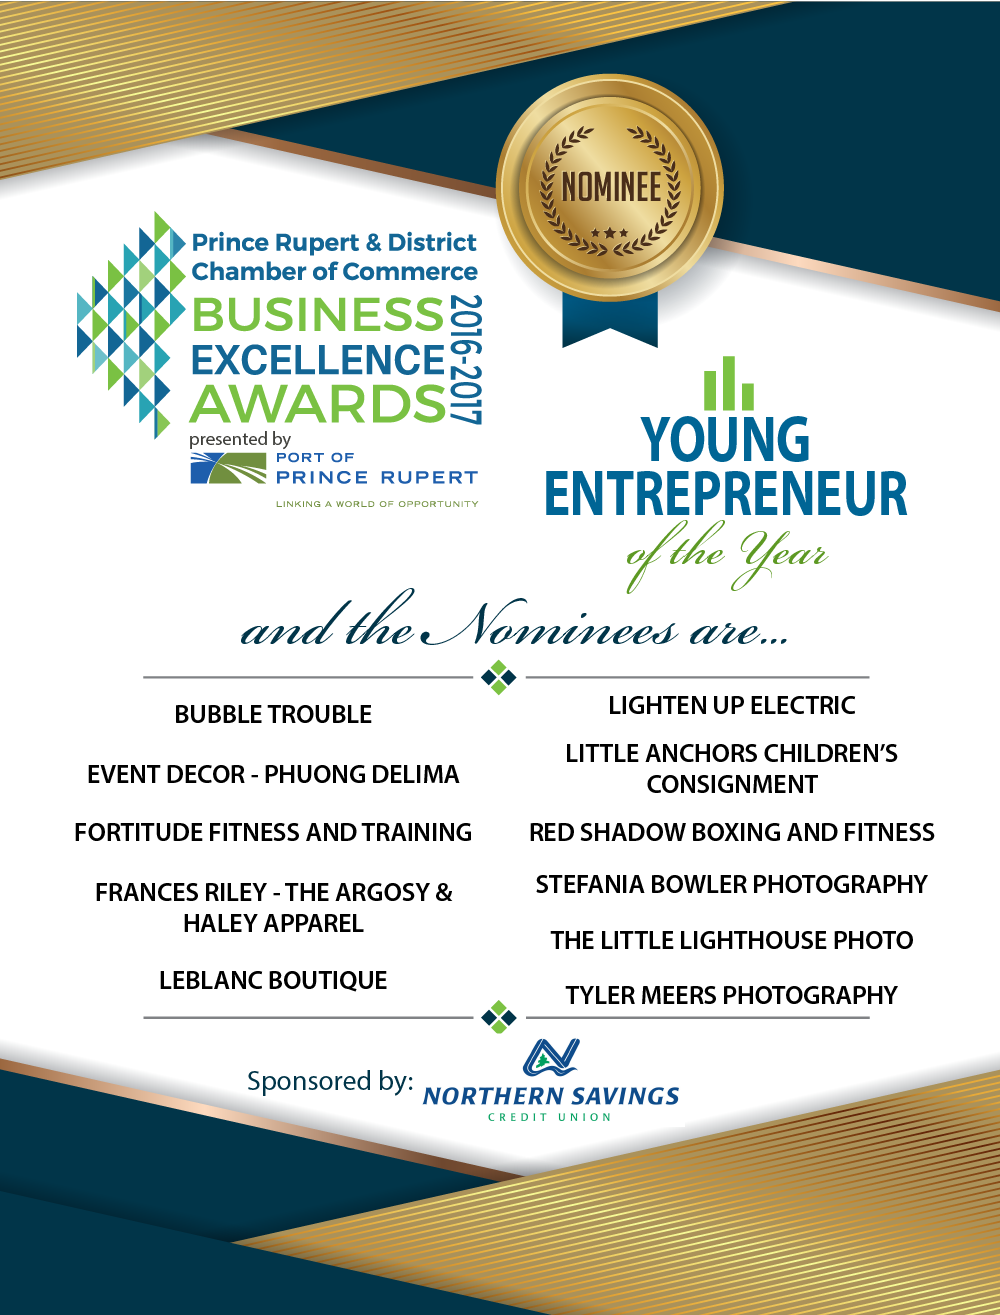 Young Entrepreneur of the Year